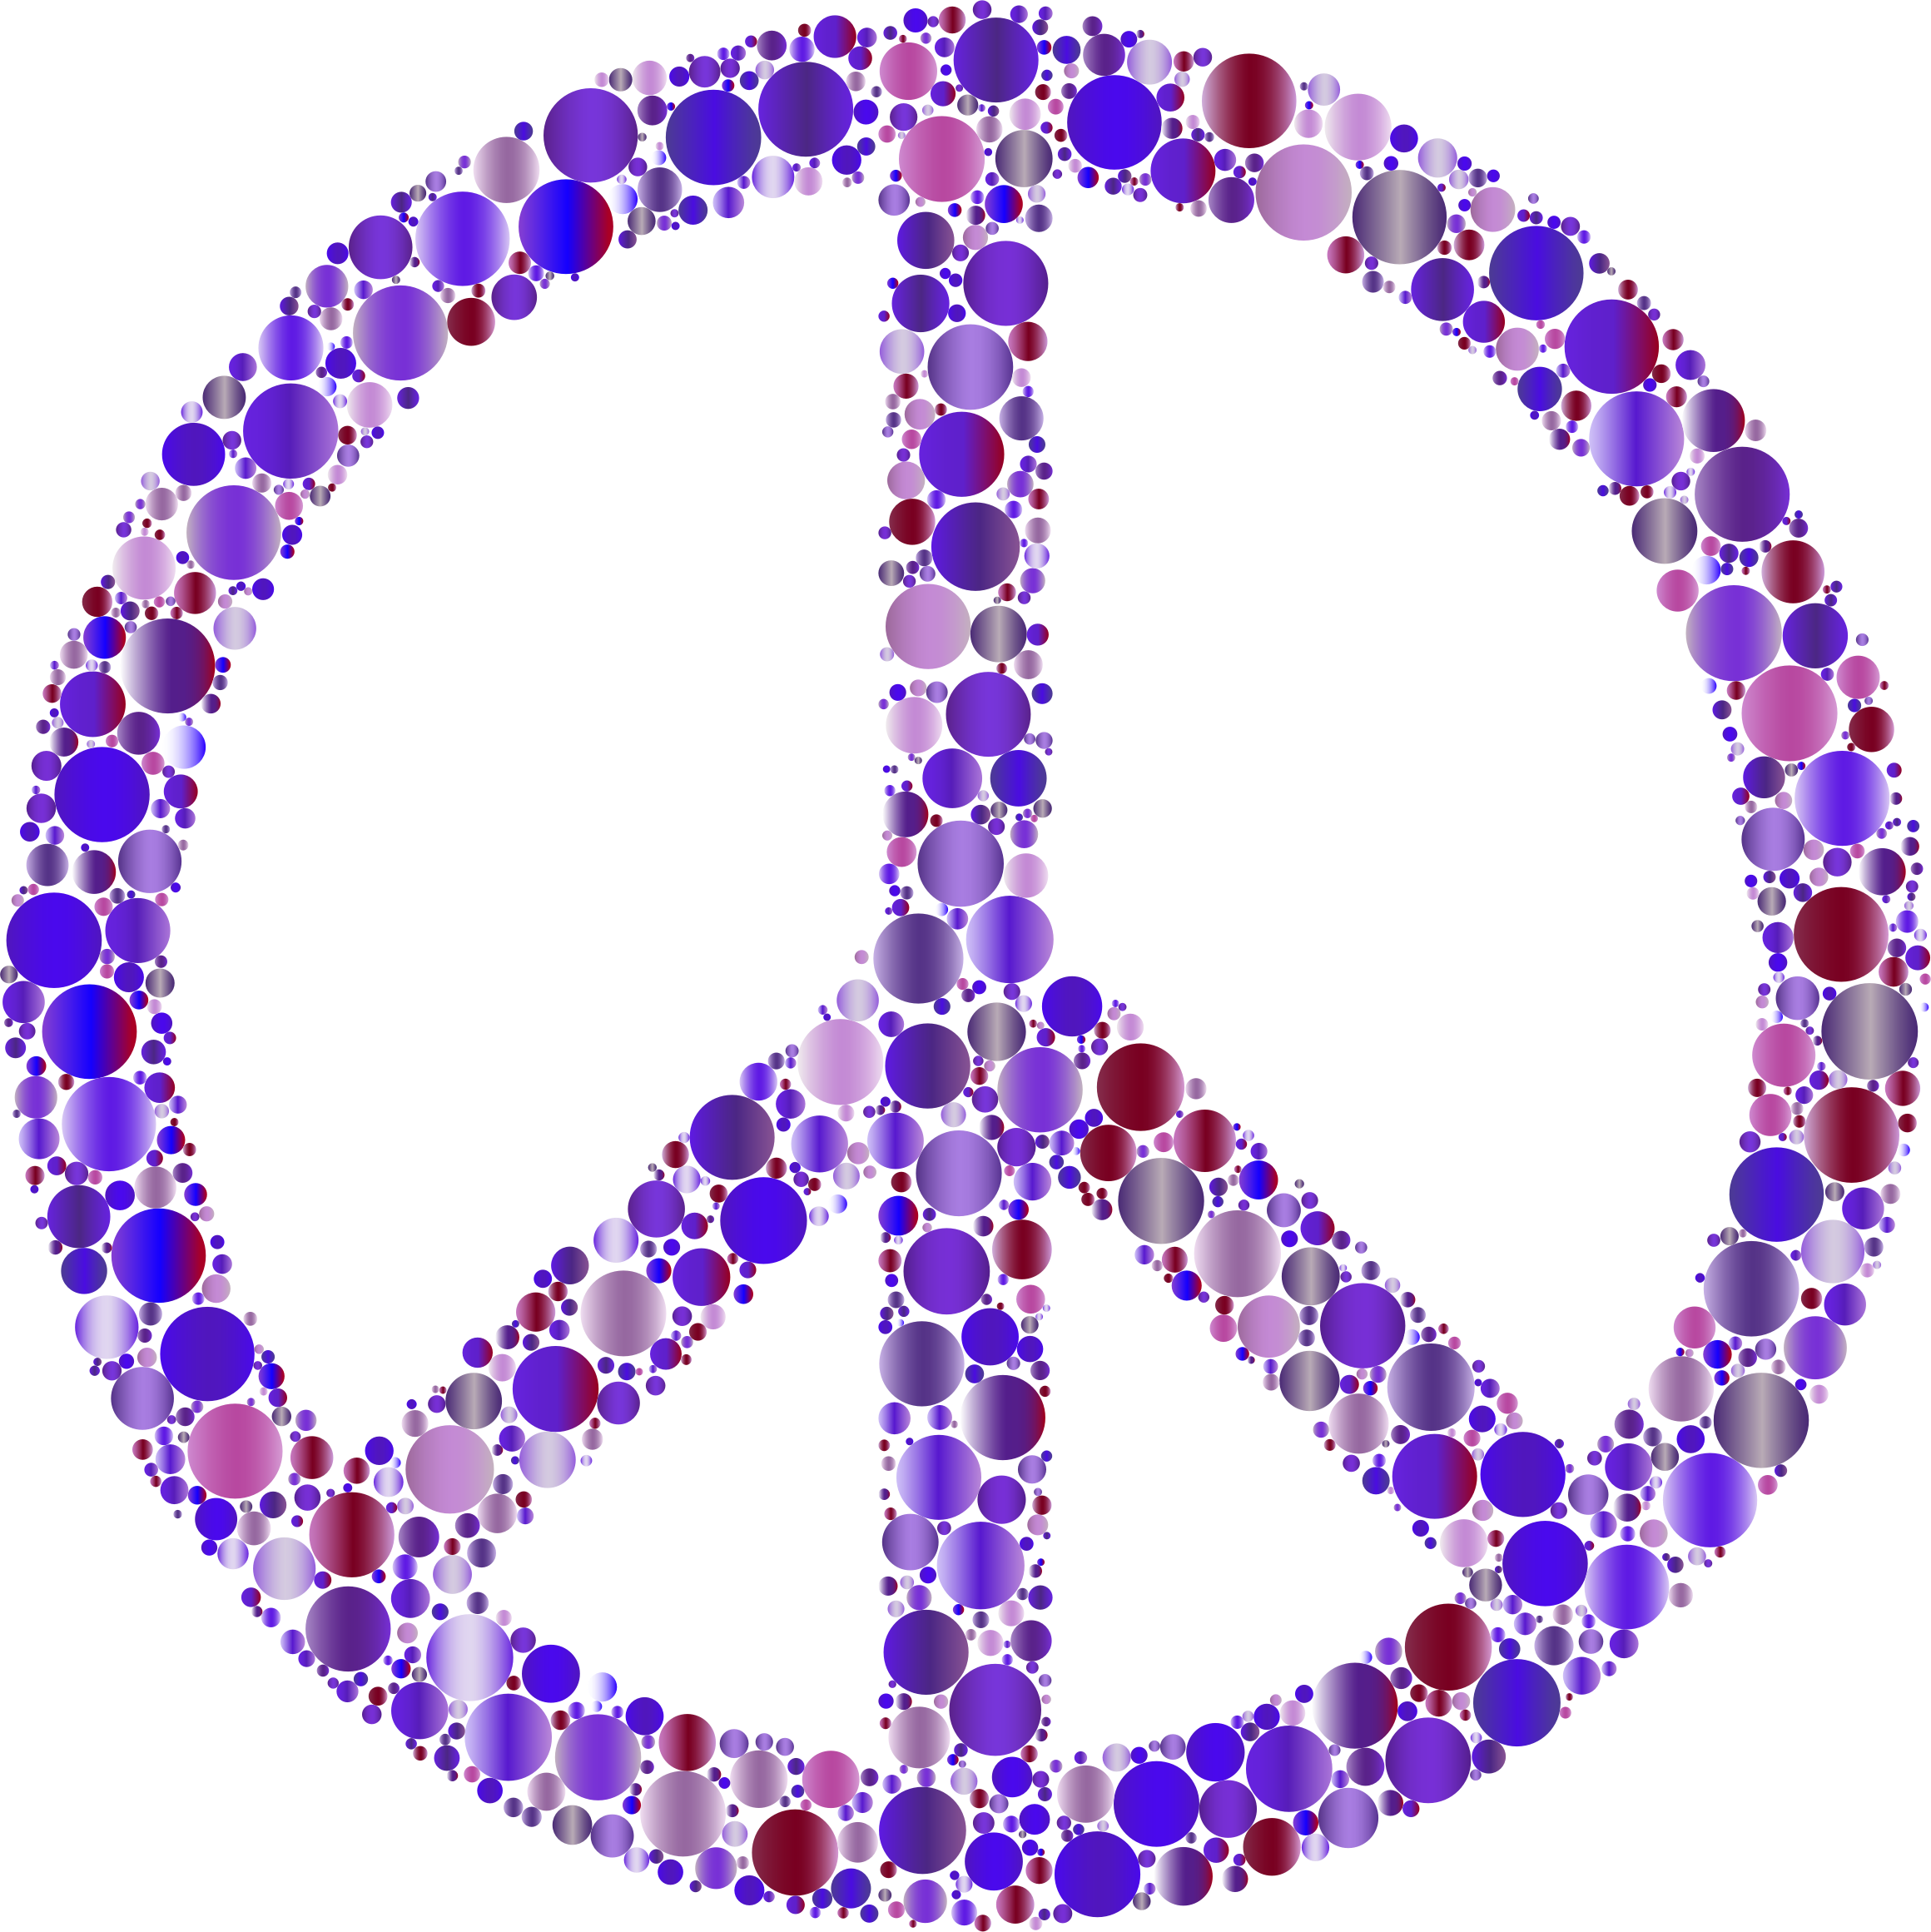 Colorful Circles Peace Sign 10 by GDJ